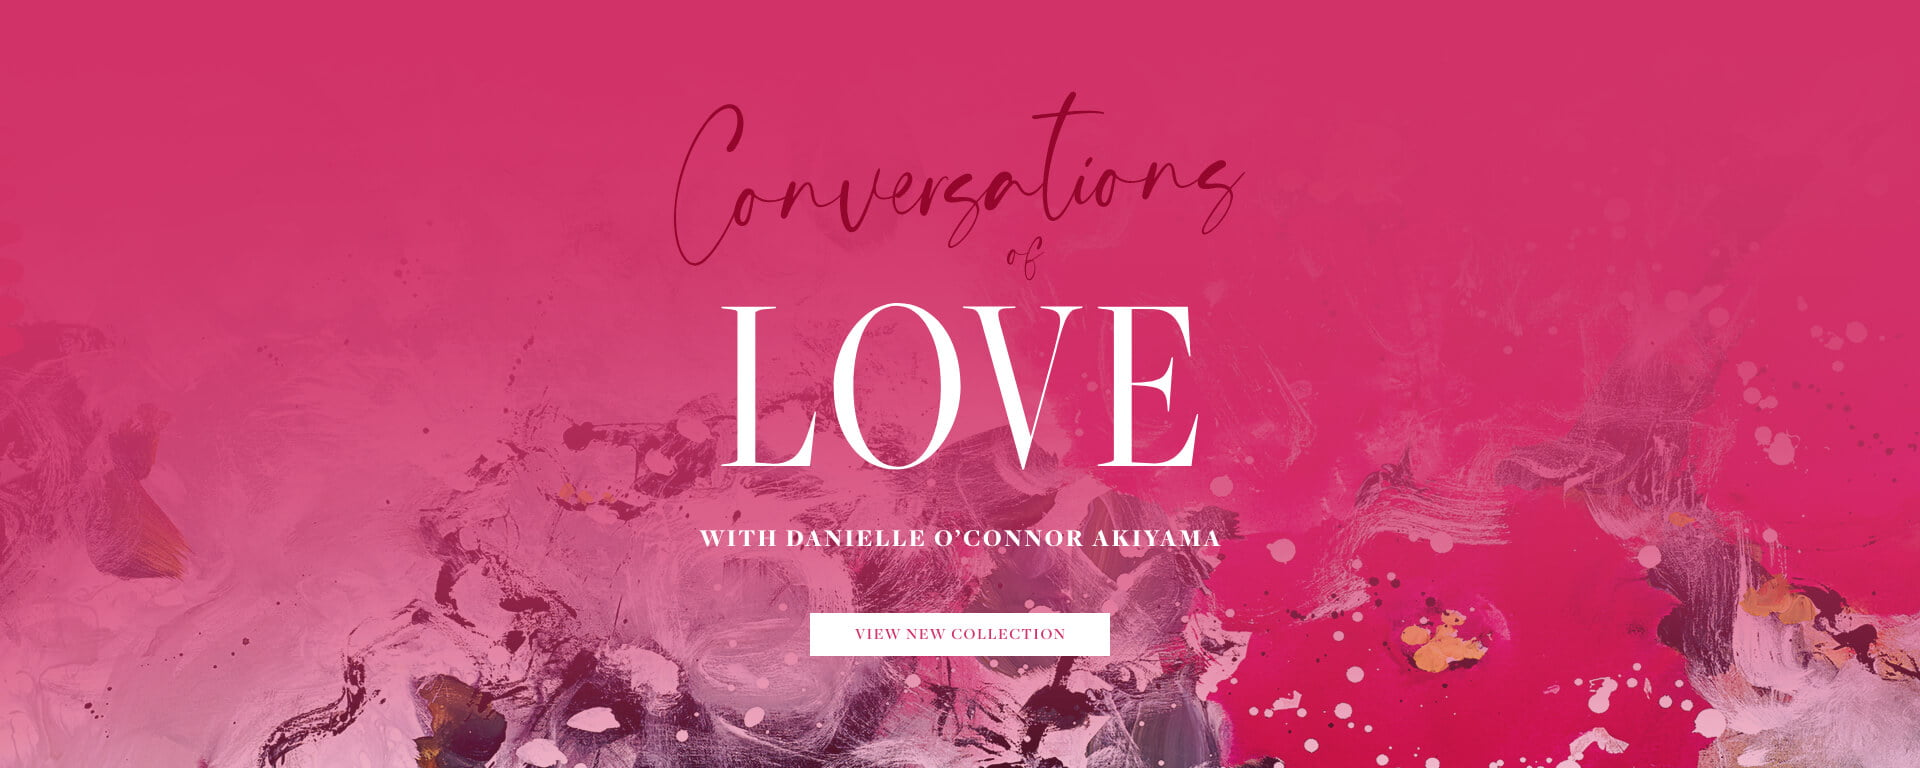 Danielle O'Connor Akiyama | Conversations of Love